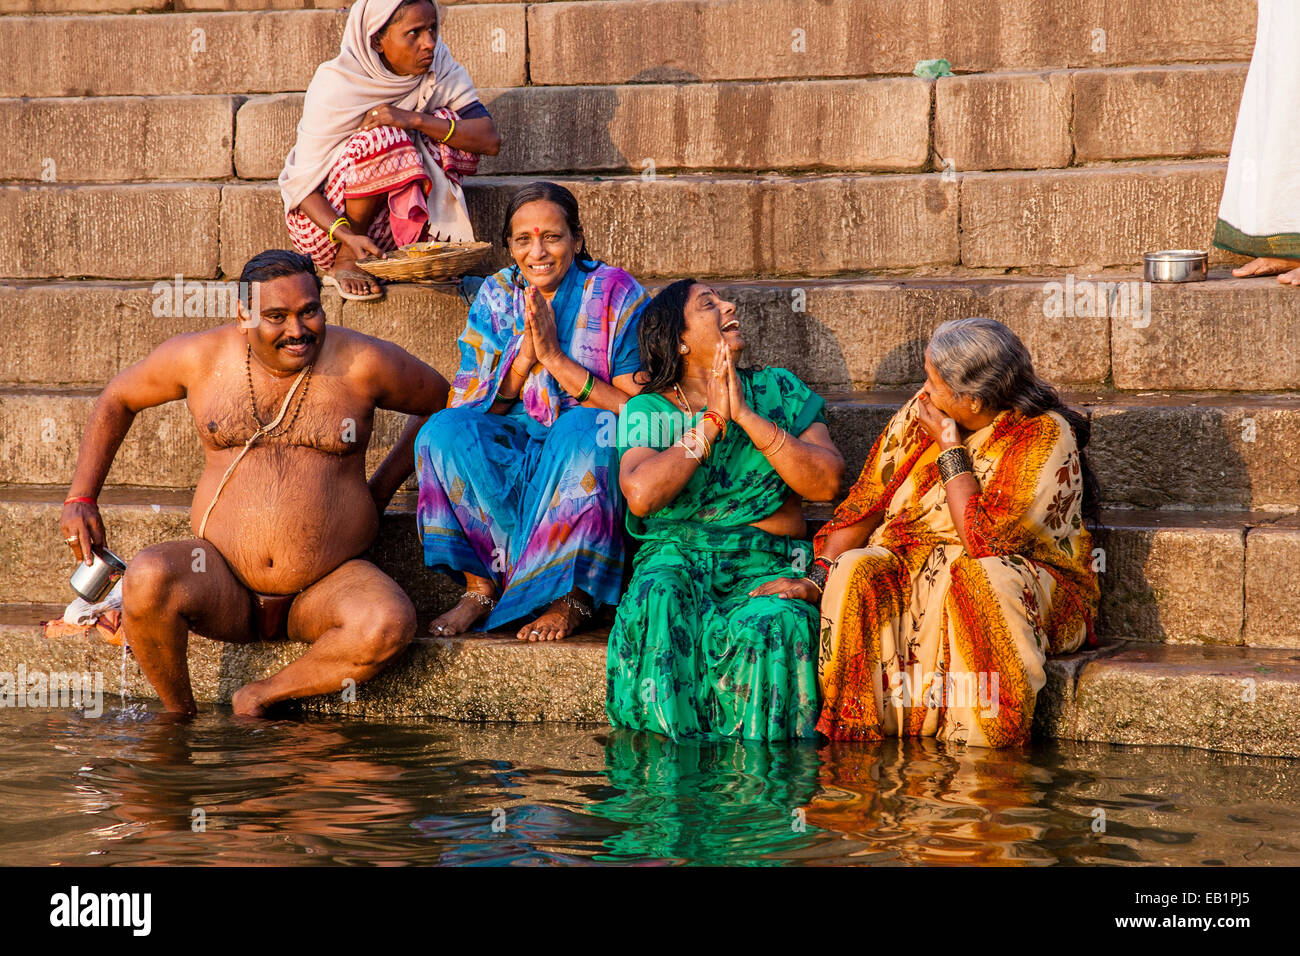 hindu single men in two rivers Millions of hindus plunge into ganges river in indian  or naga sadhus, celebrate naked in the water at the rivers  an indian hindu holy men.